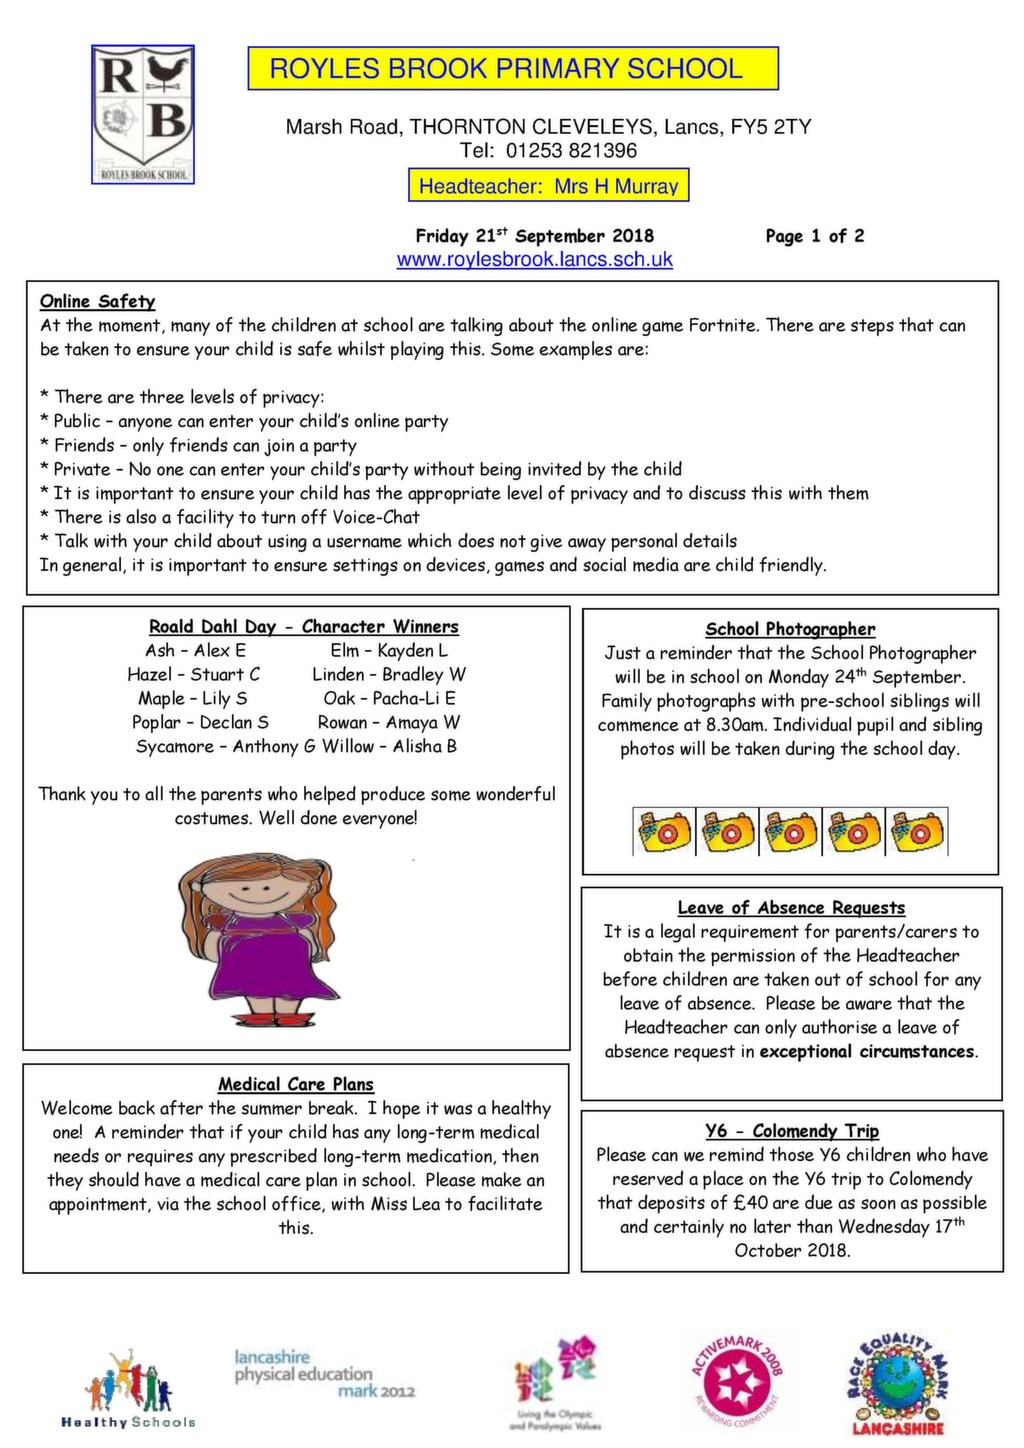 newsletter examples for schools